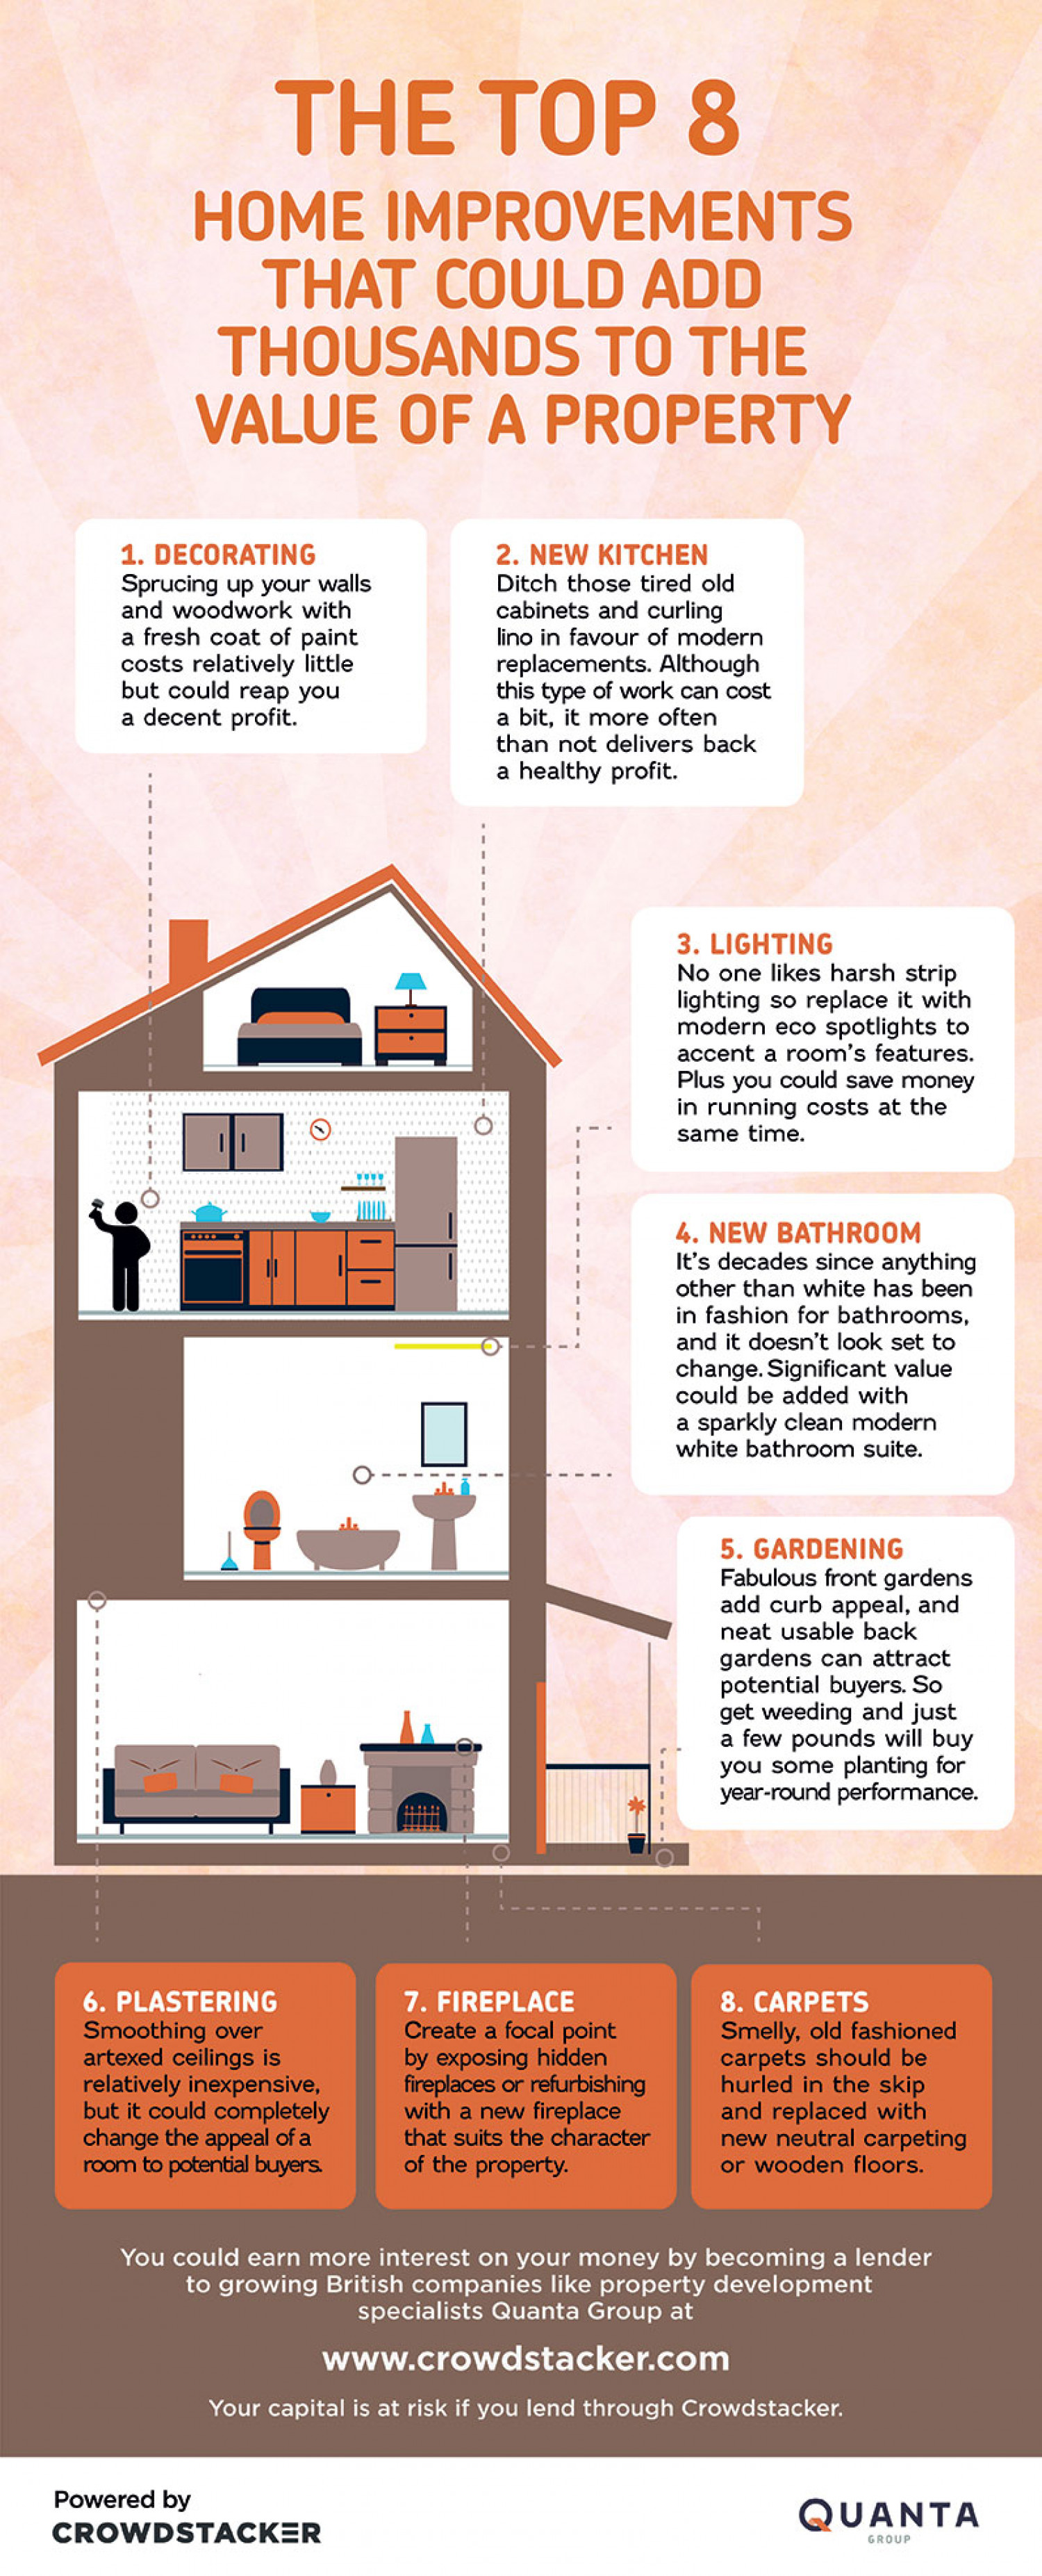 The Top 8 Home Improvements That Could Add Thousands To Value Of A Property Infographic